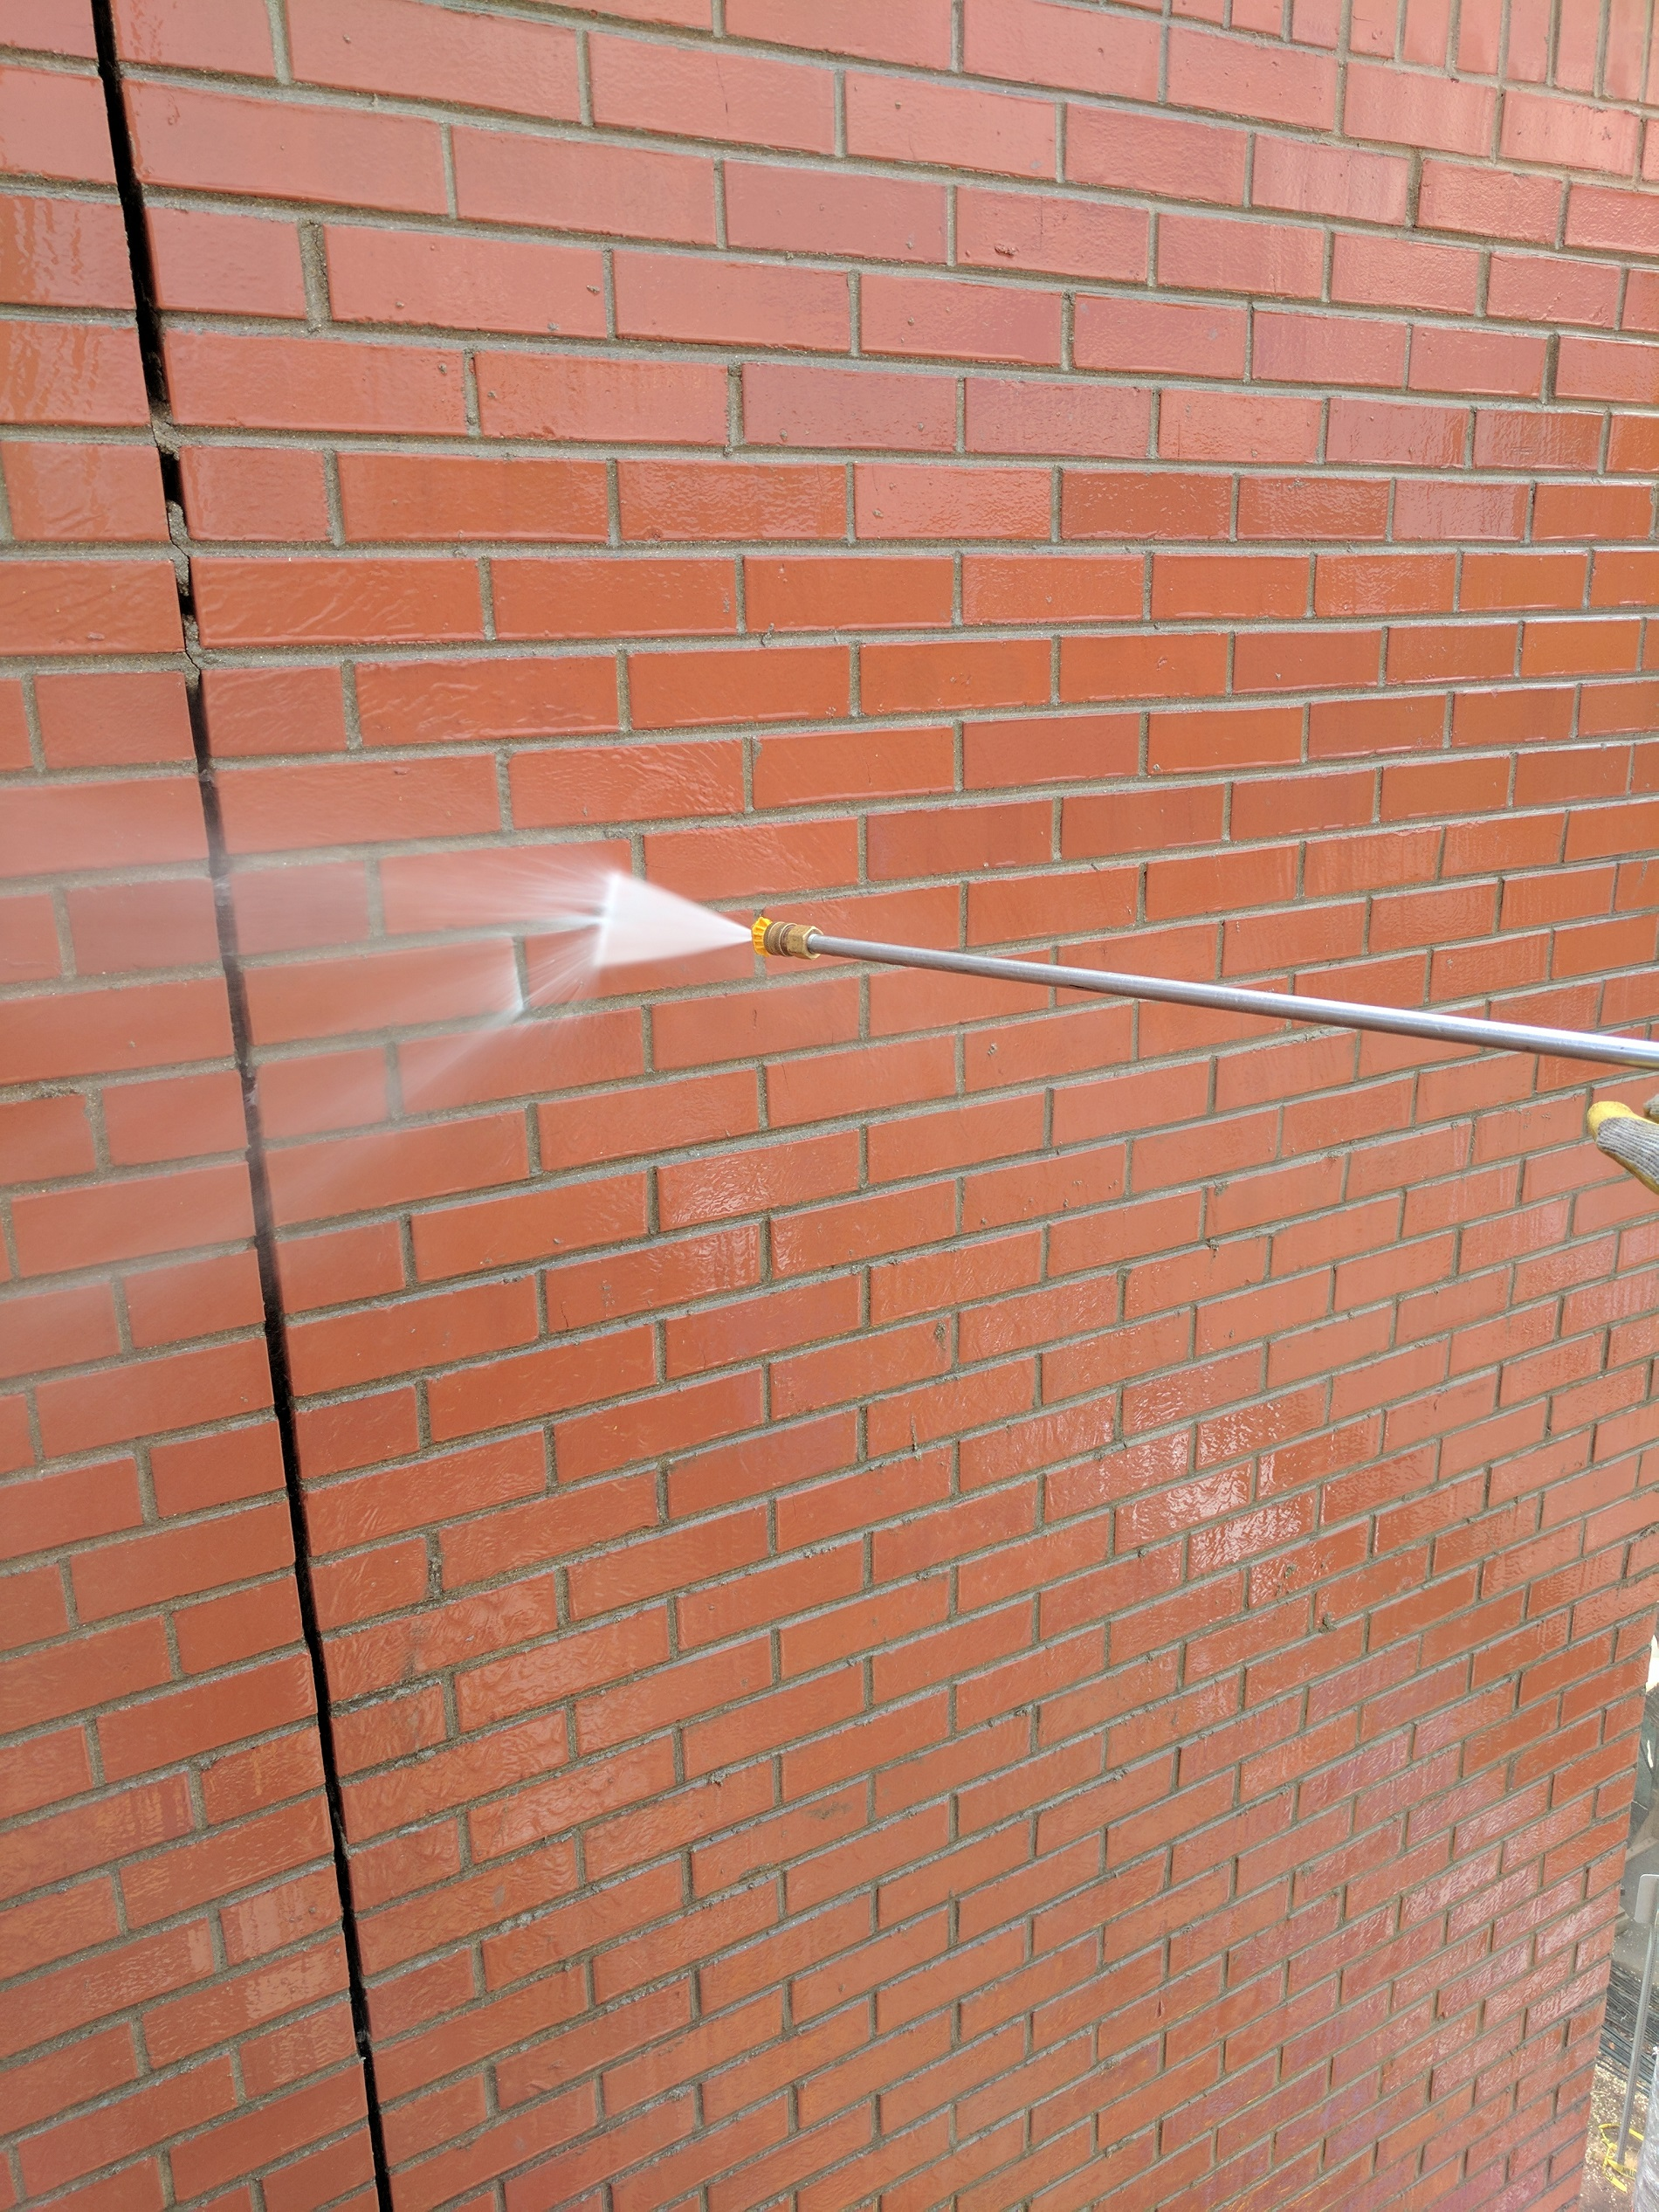 Residential Pressure Washing in Fort Collins, Loveland, Greeley, Windsor, Longmont, Berthoud Wellington, Estes Park, Cheyenne Wyoming and surrounding areas.